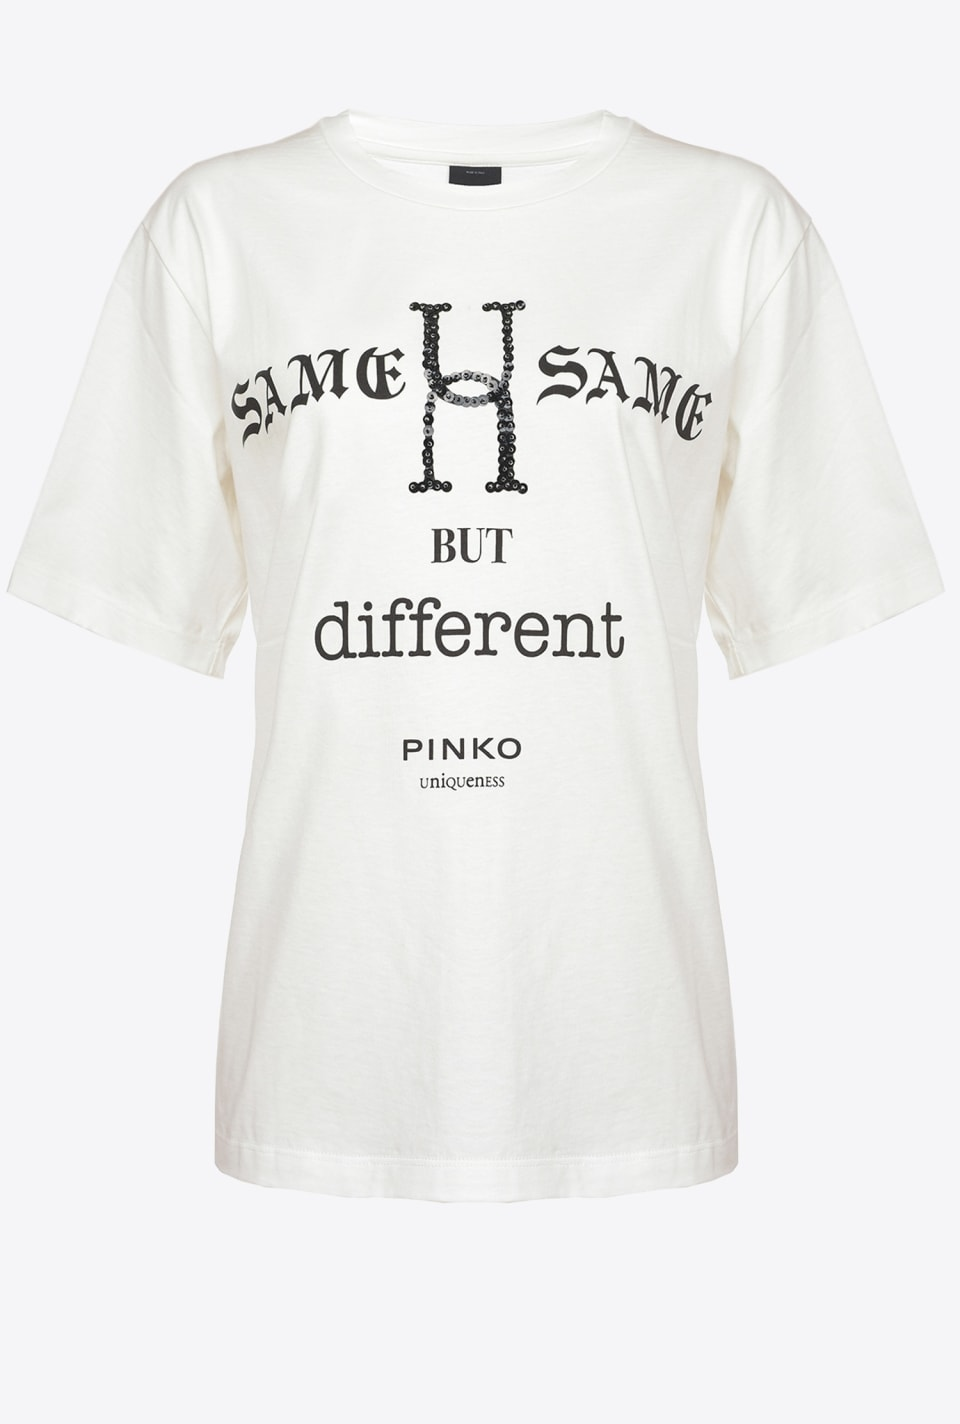 Same Same But Different T-shirt - Pinko